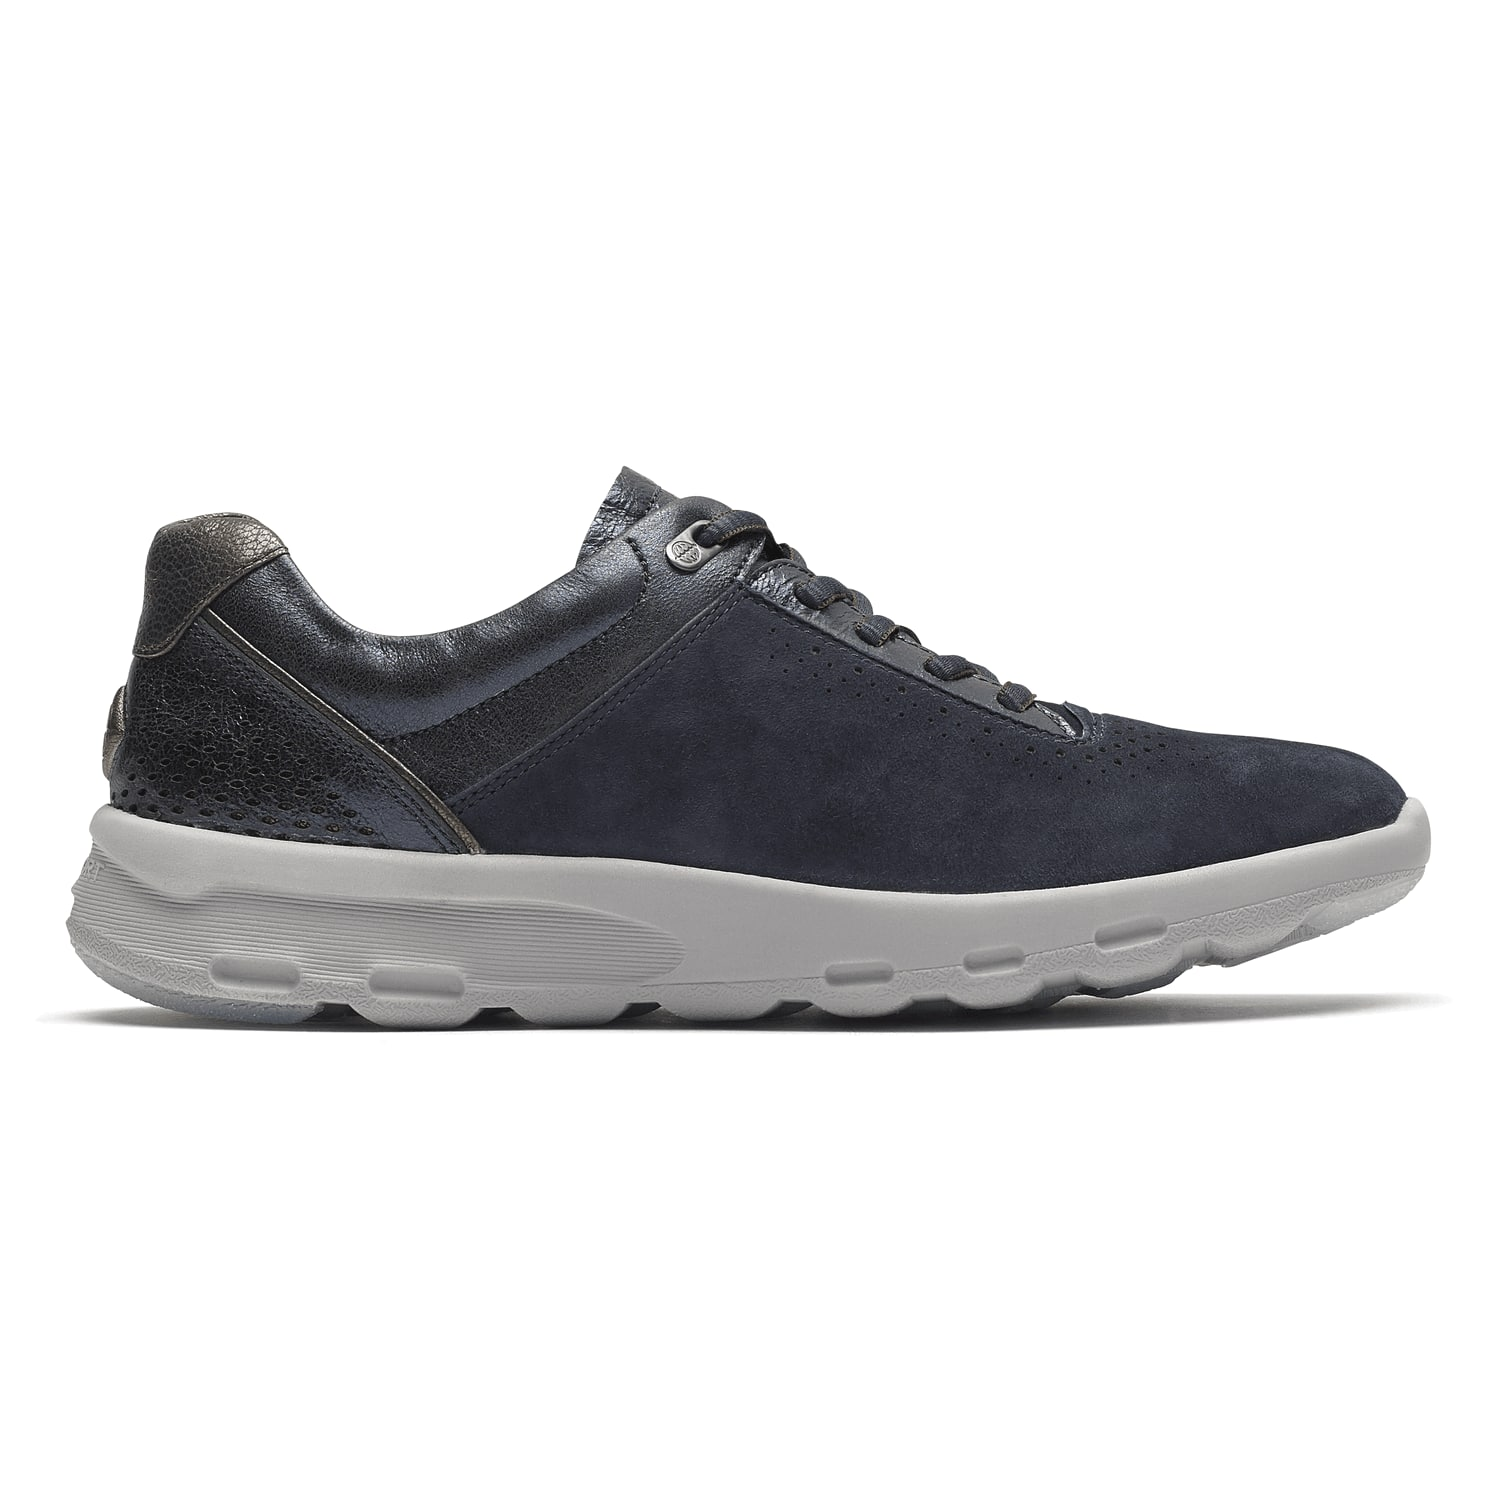 Rockport: Save Up to 70% OFF with code SLICKVIP on select items, valid through 3/10/2020 $38